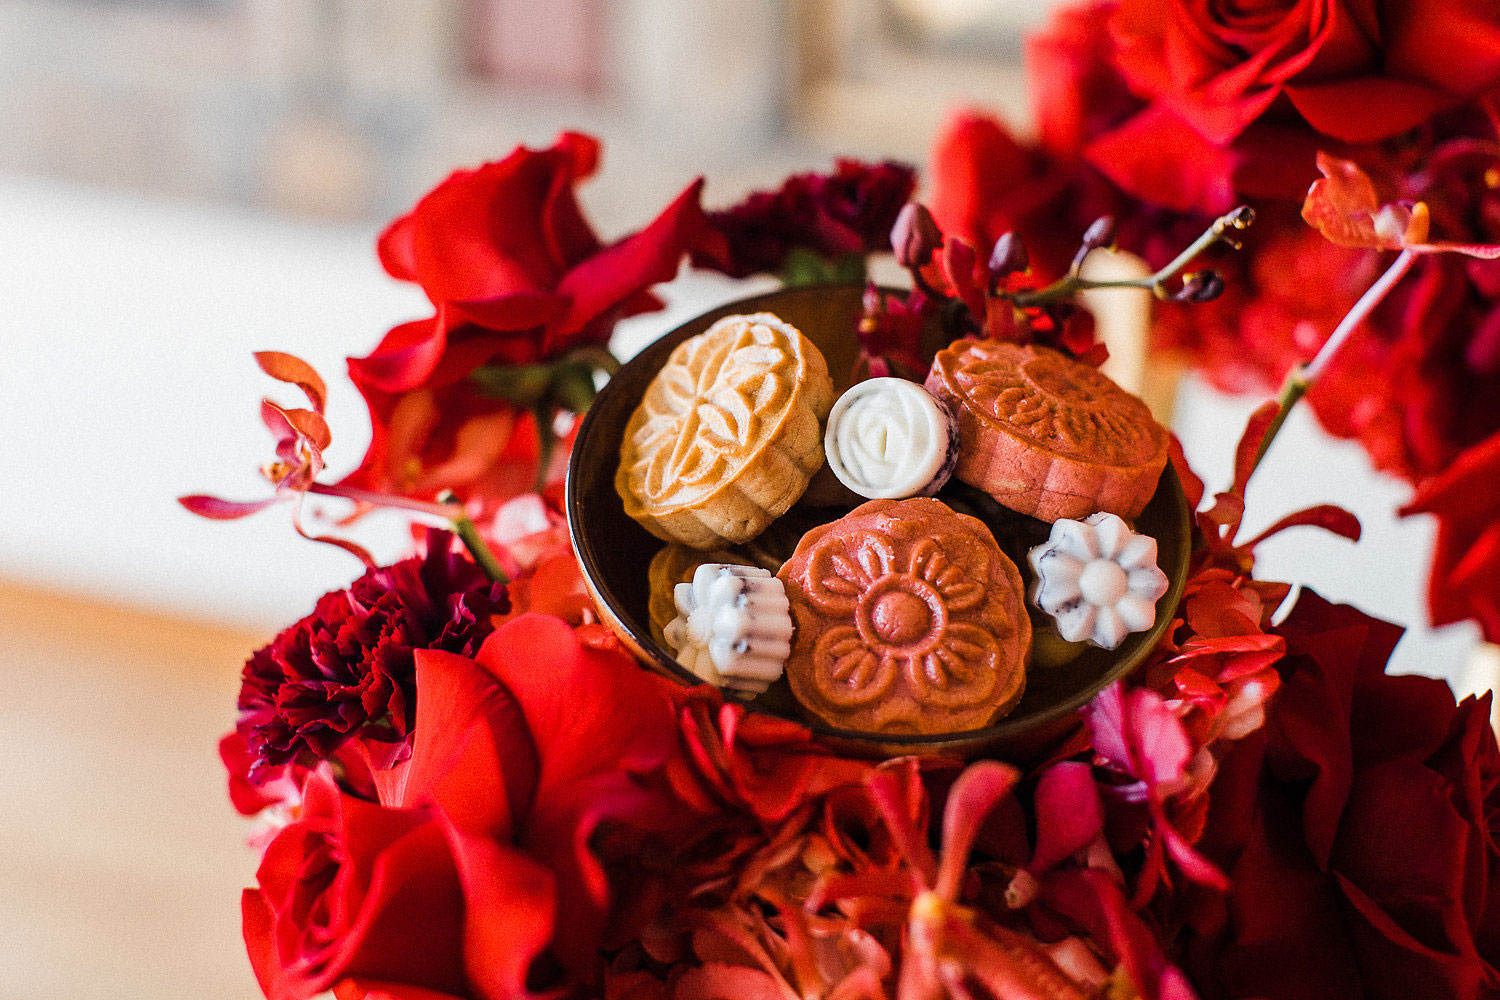 toronto moon cakes - on a bed of flowers